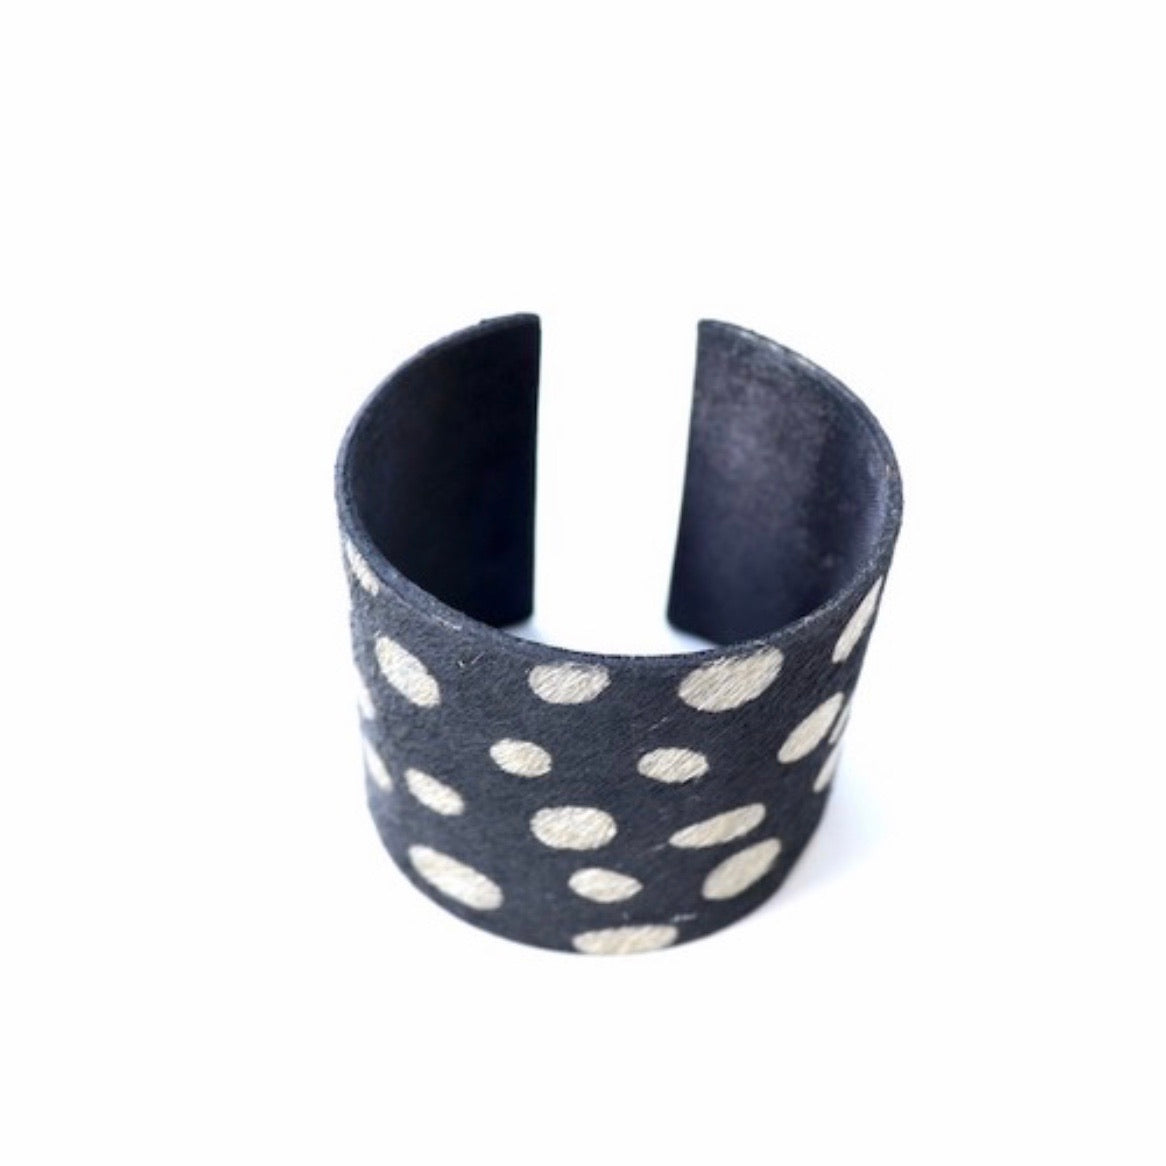 White Spotted Animal Print Cuff Bracelet